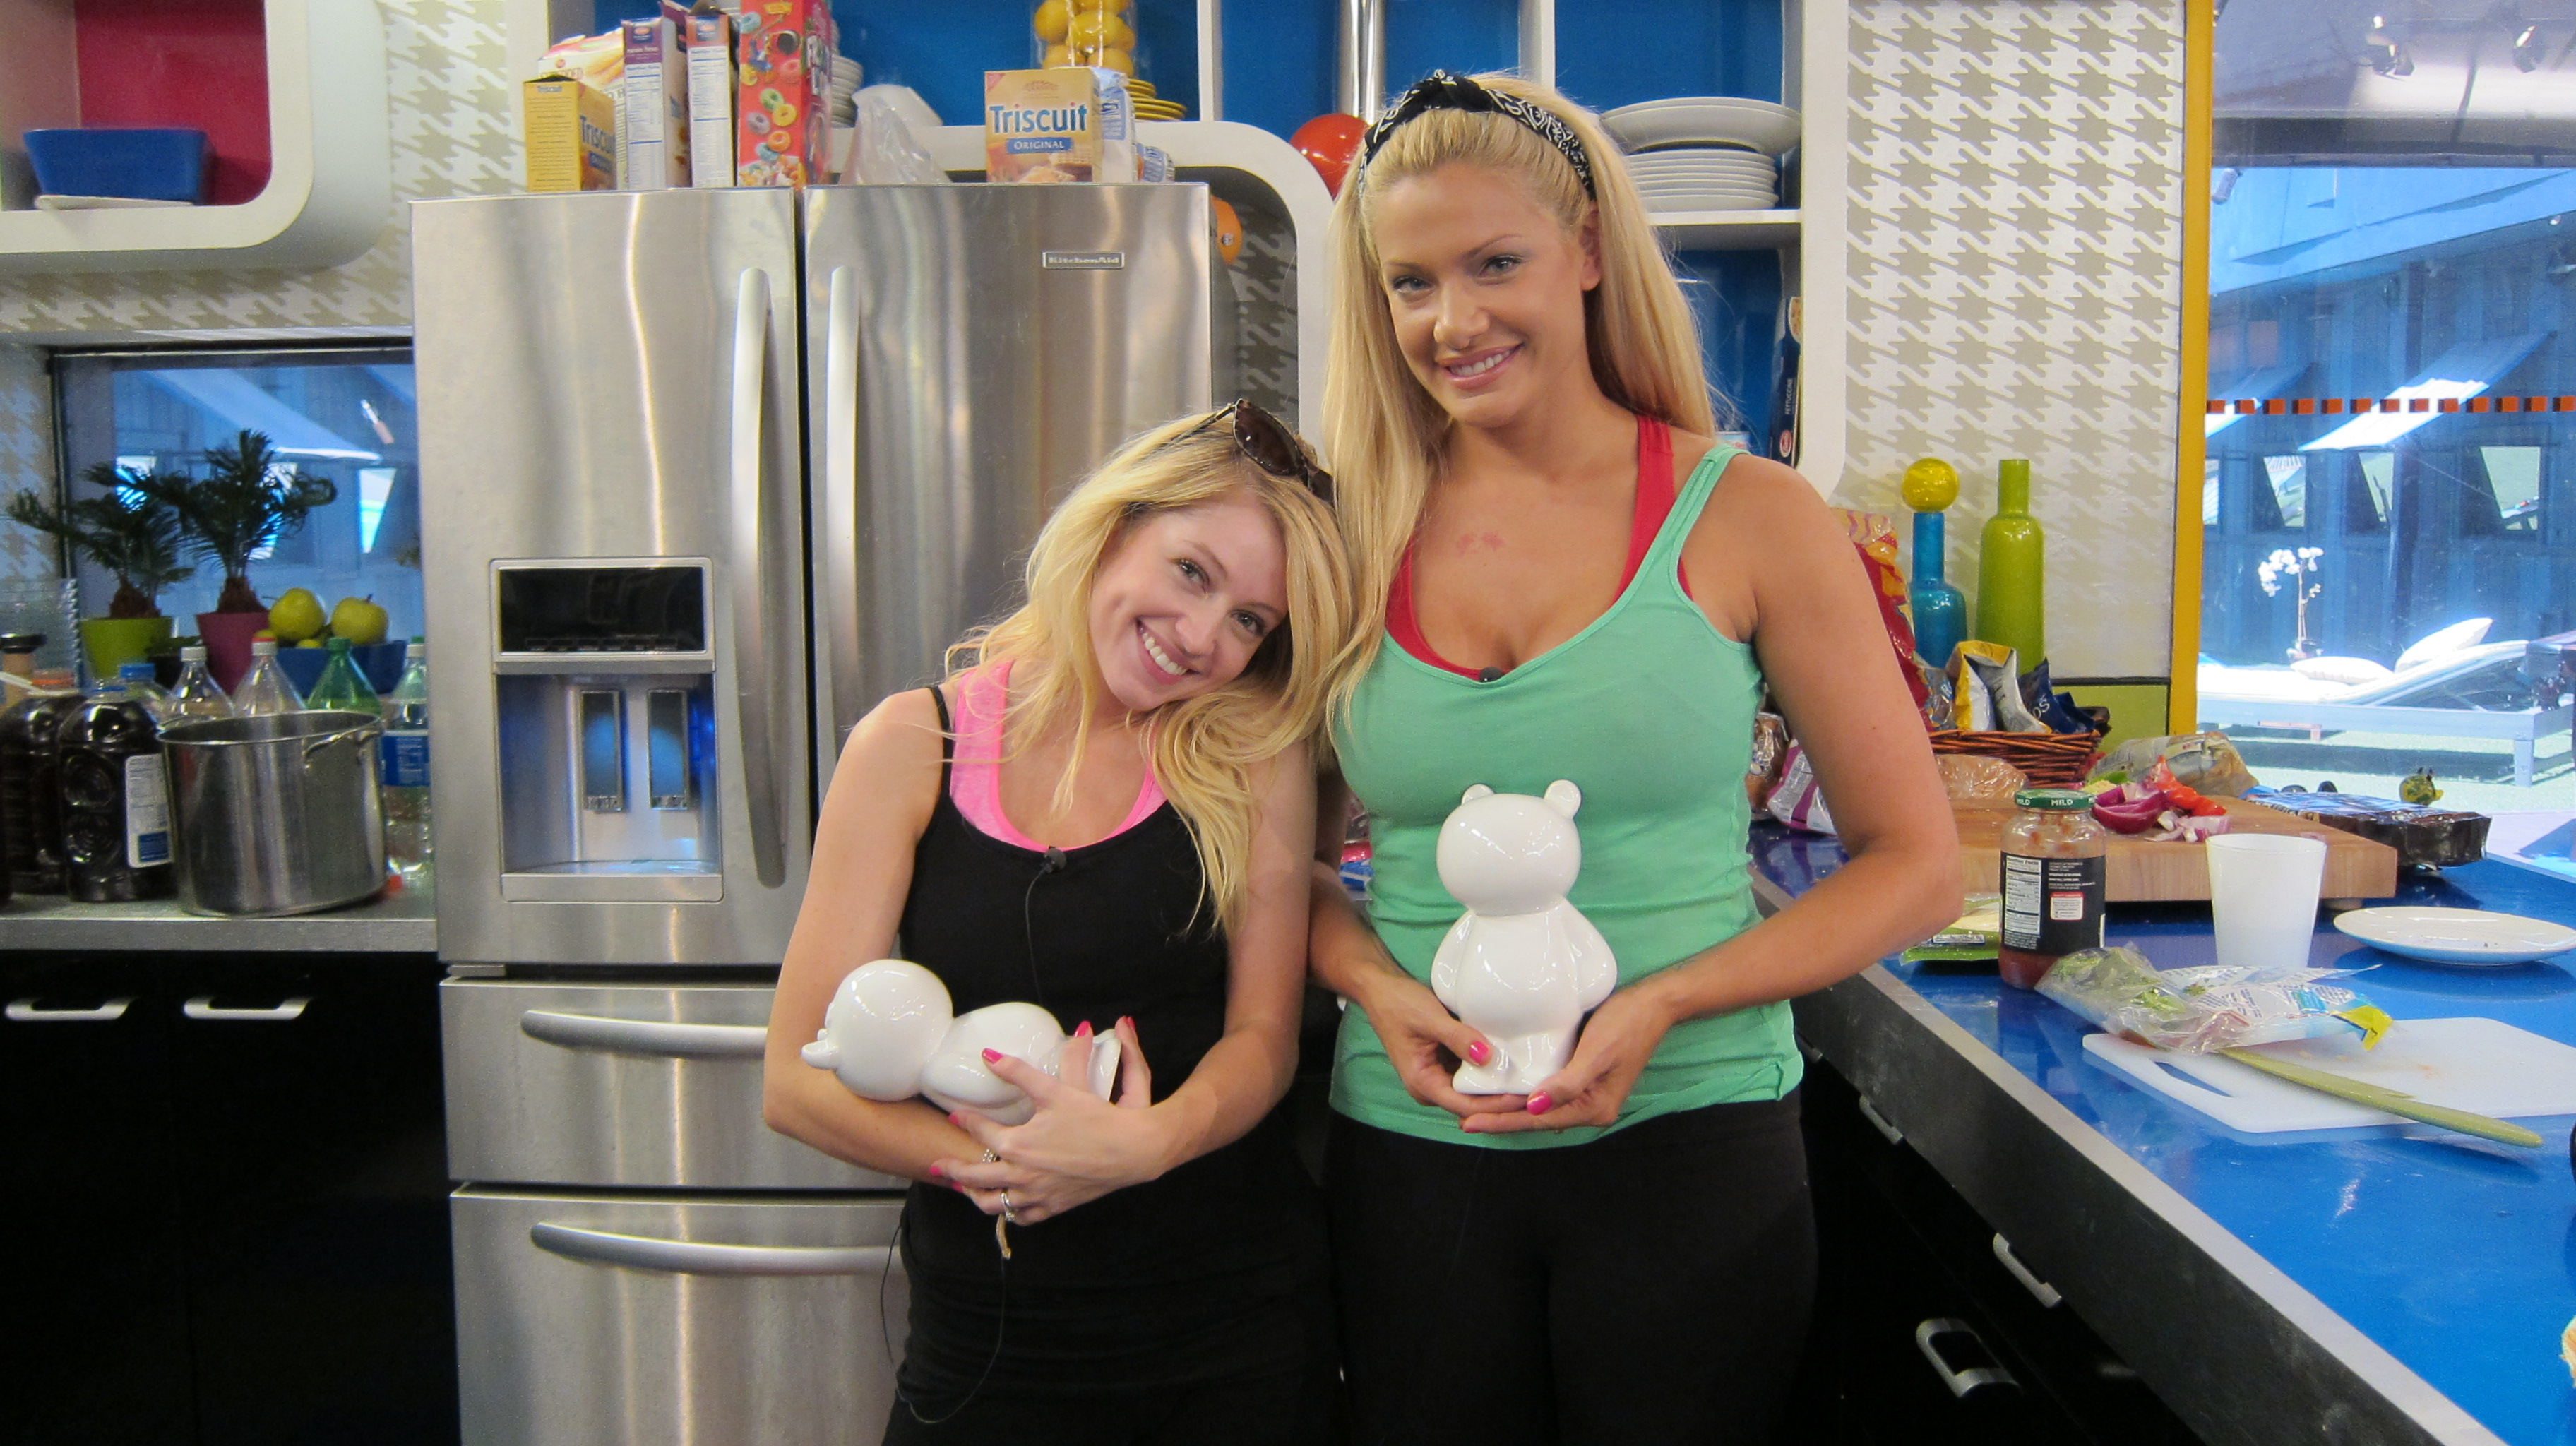 Britney and Janelle